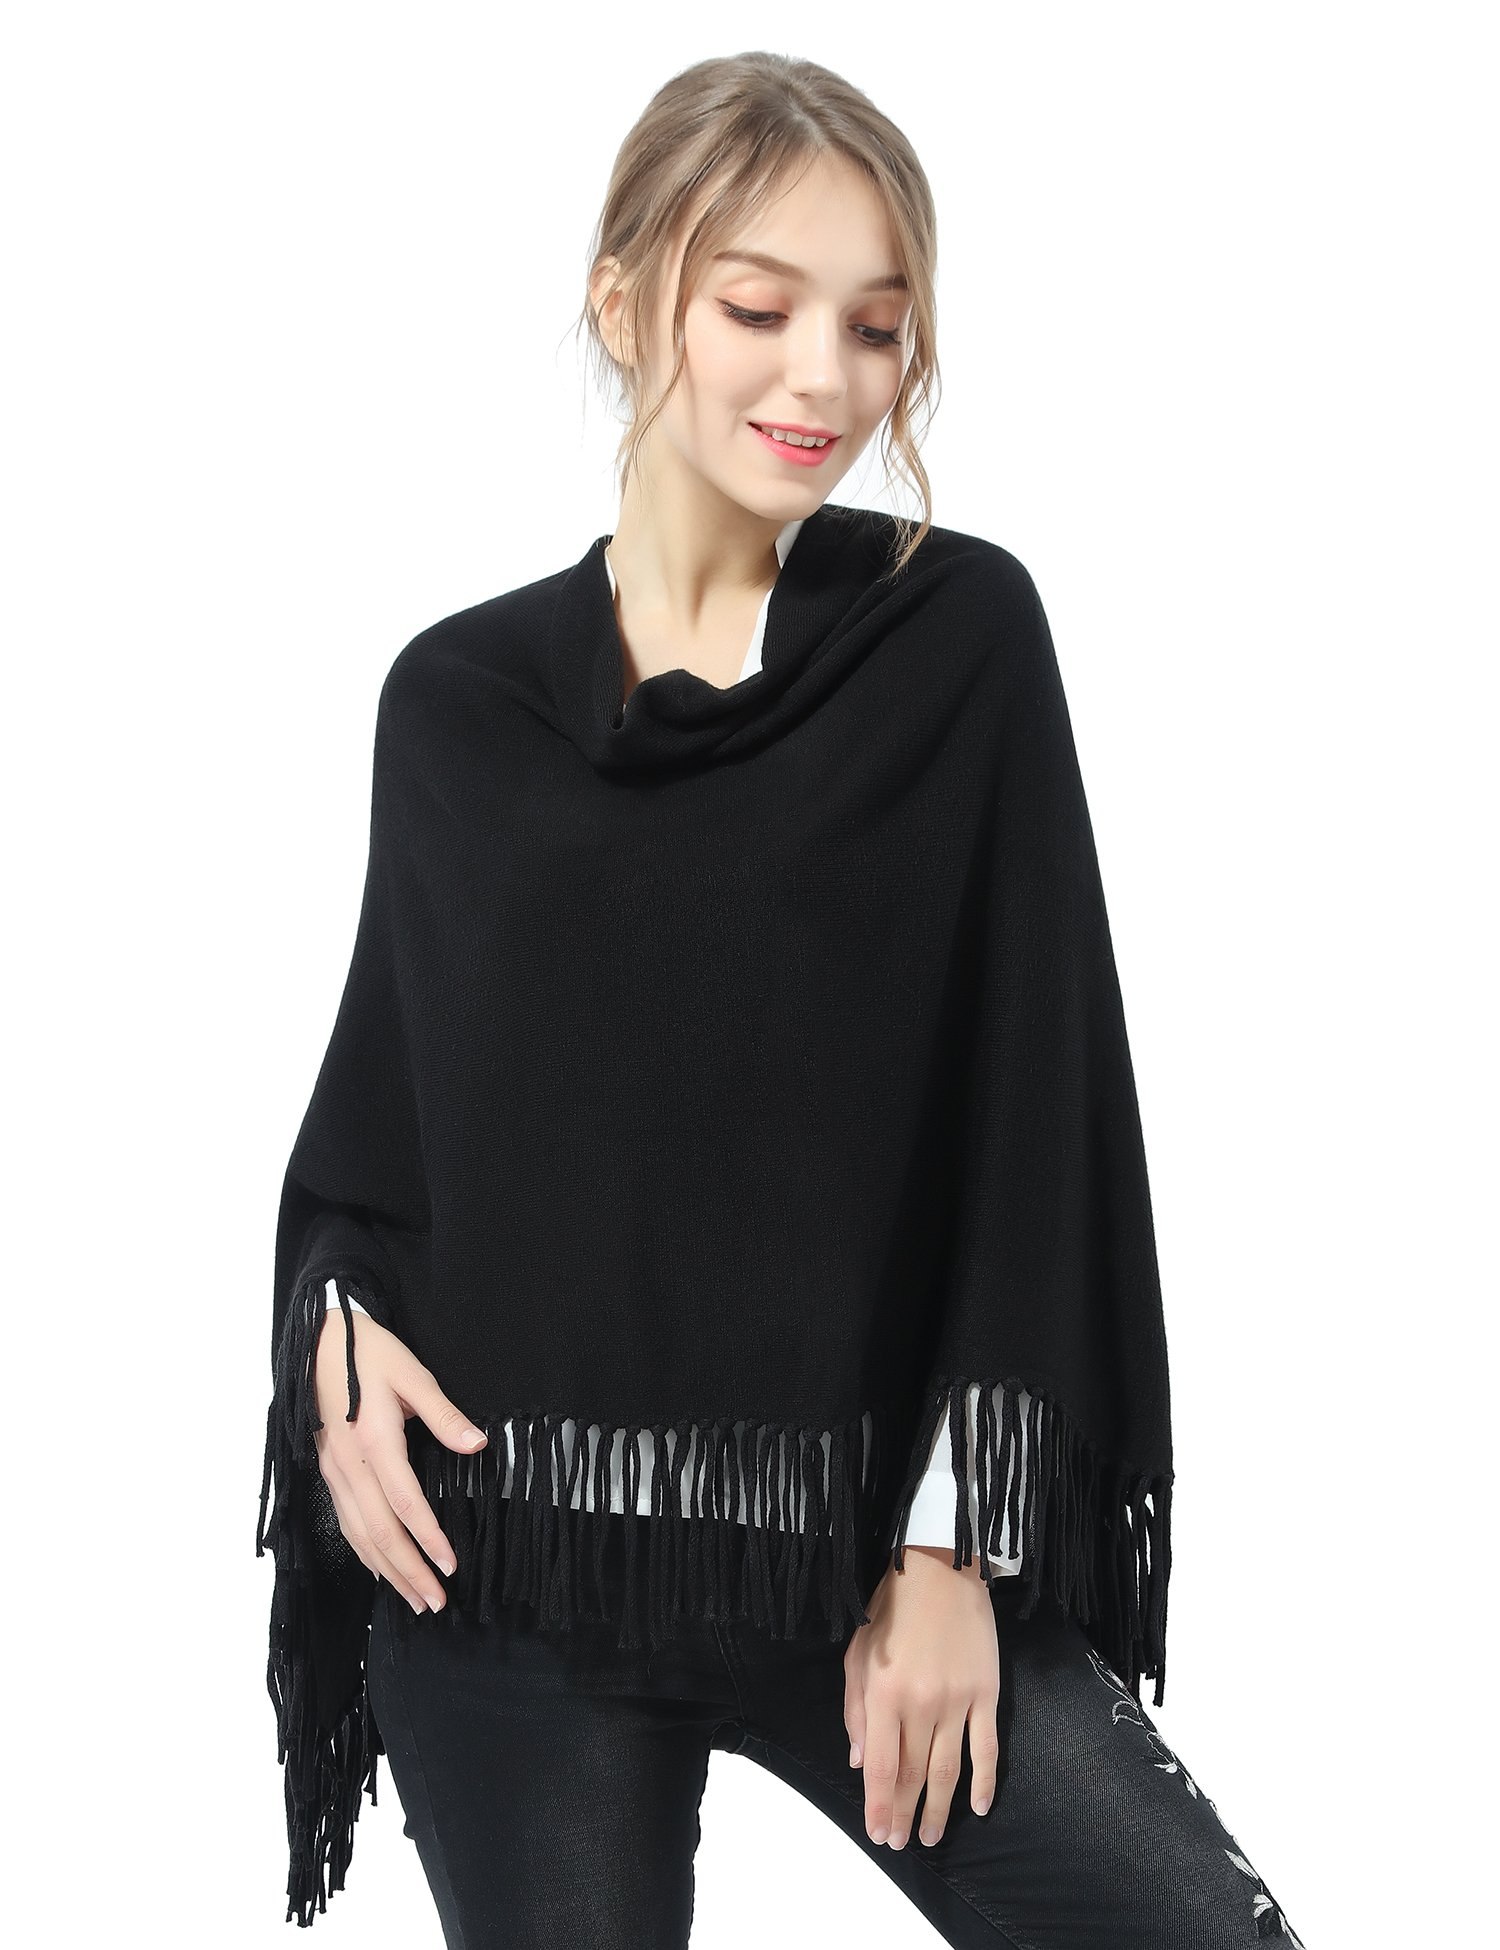 Joulli Women's Knitted Tassel Asymmetric Poncho Wrap Shawl Solid Color Scarf For Casual Business Black